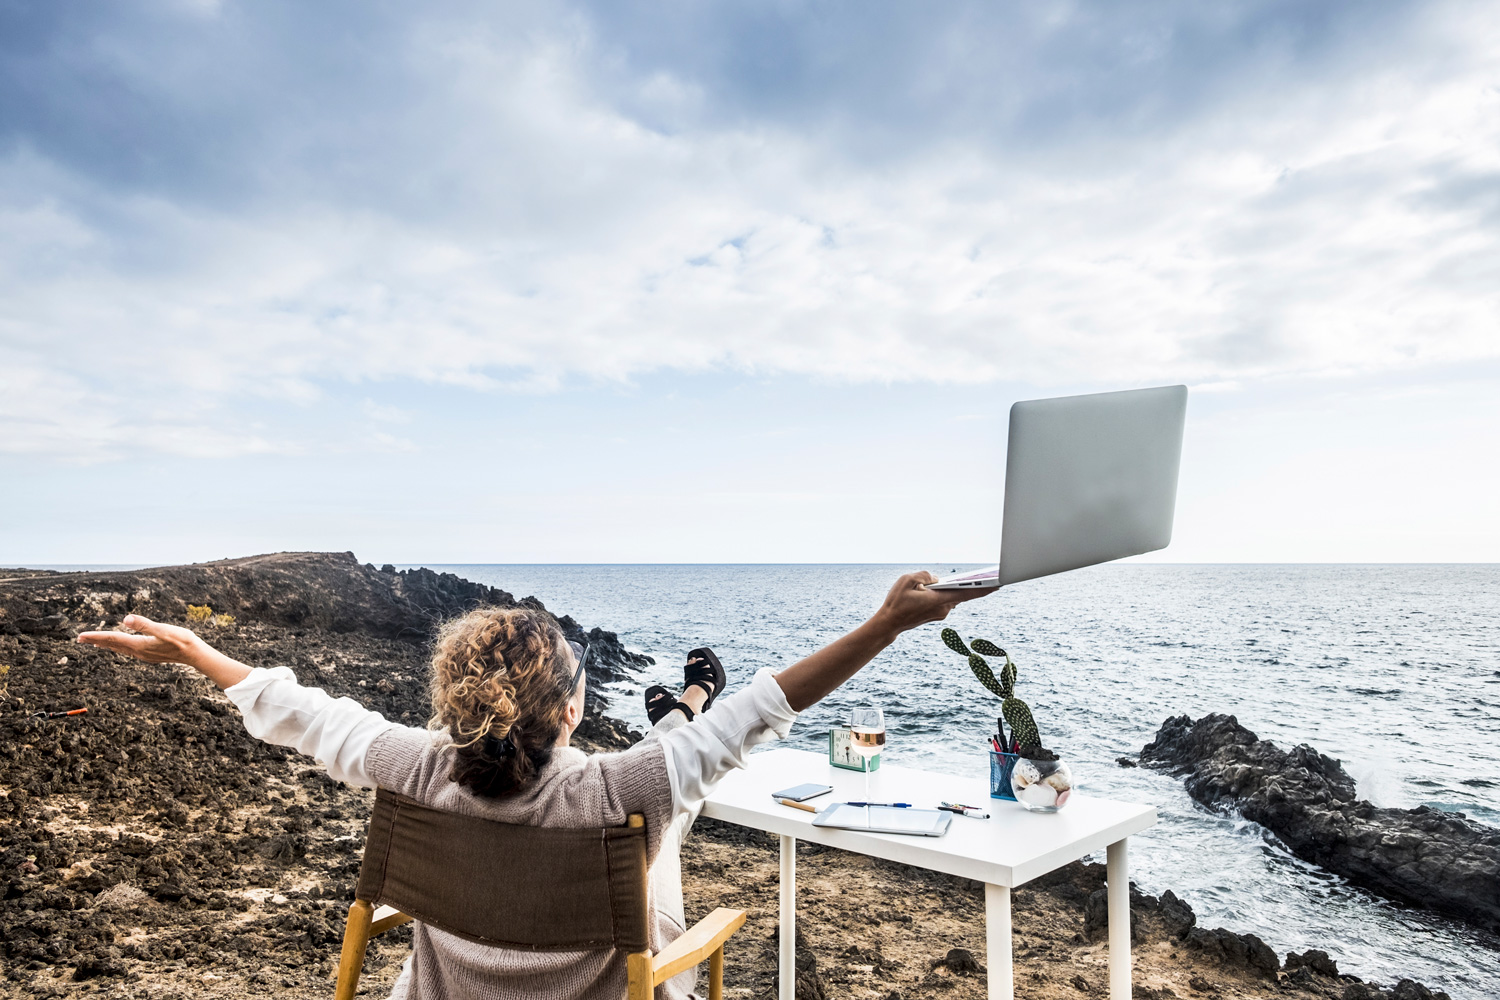 Woman-on-a-rocky-bitch-with-laptop-working-at-a-desk-freedom.jpg